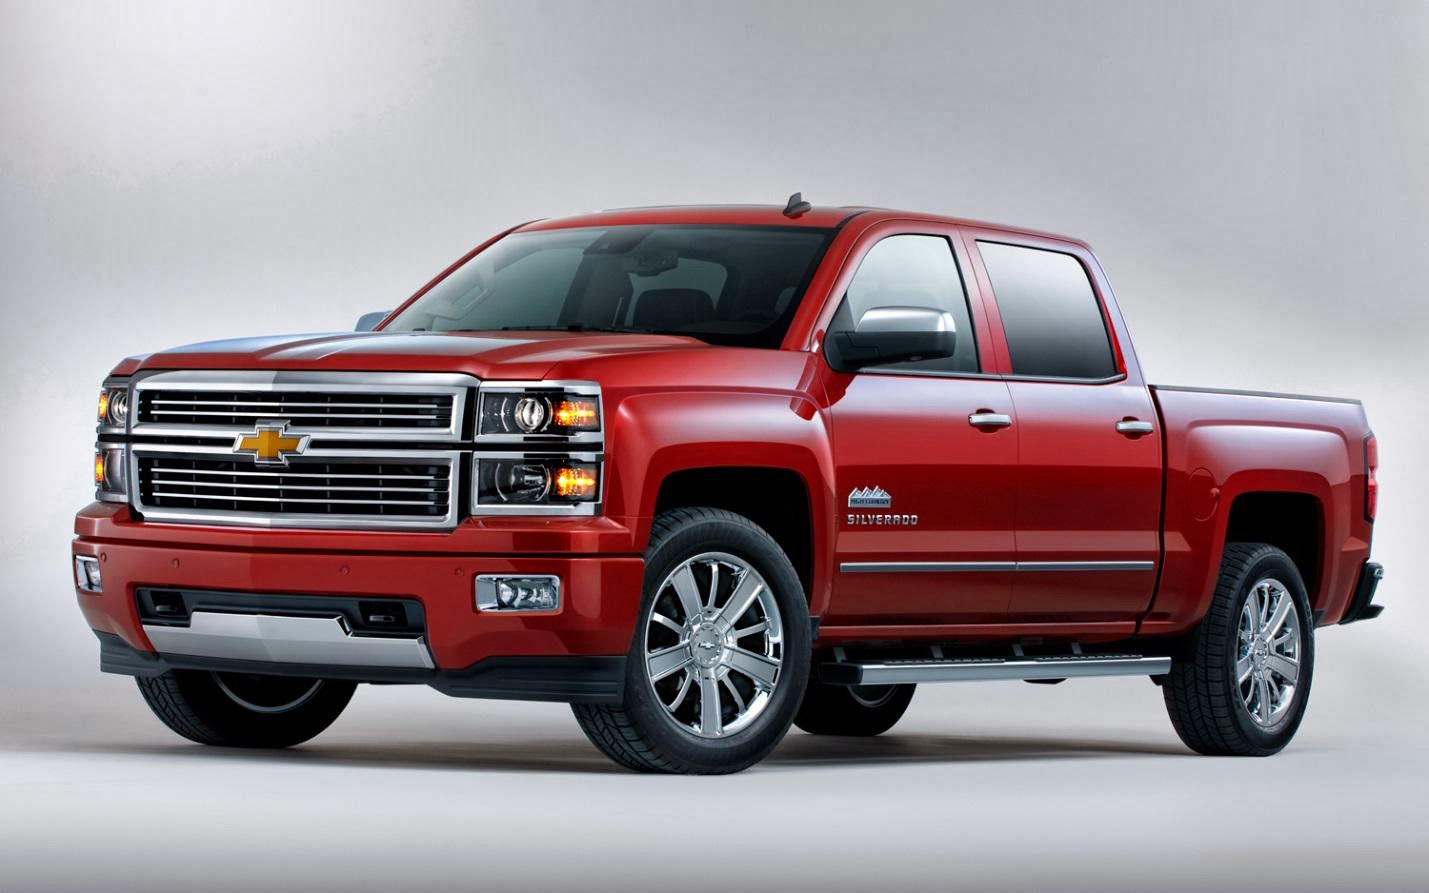 westside chevrolet houston tx 2014 chevrolet silverado high country. Black Bedroom Furniture Sets. Home Design Ideas